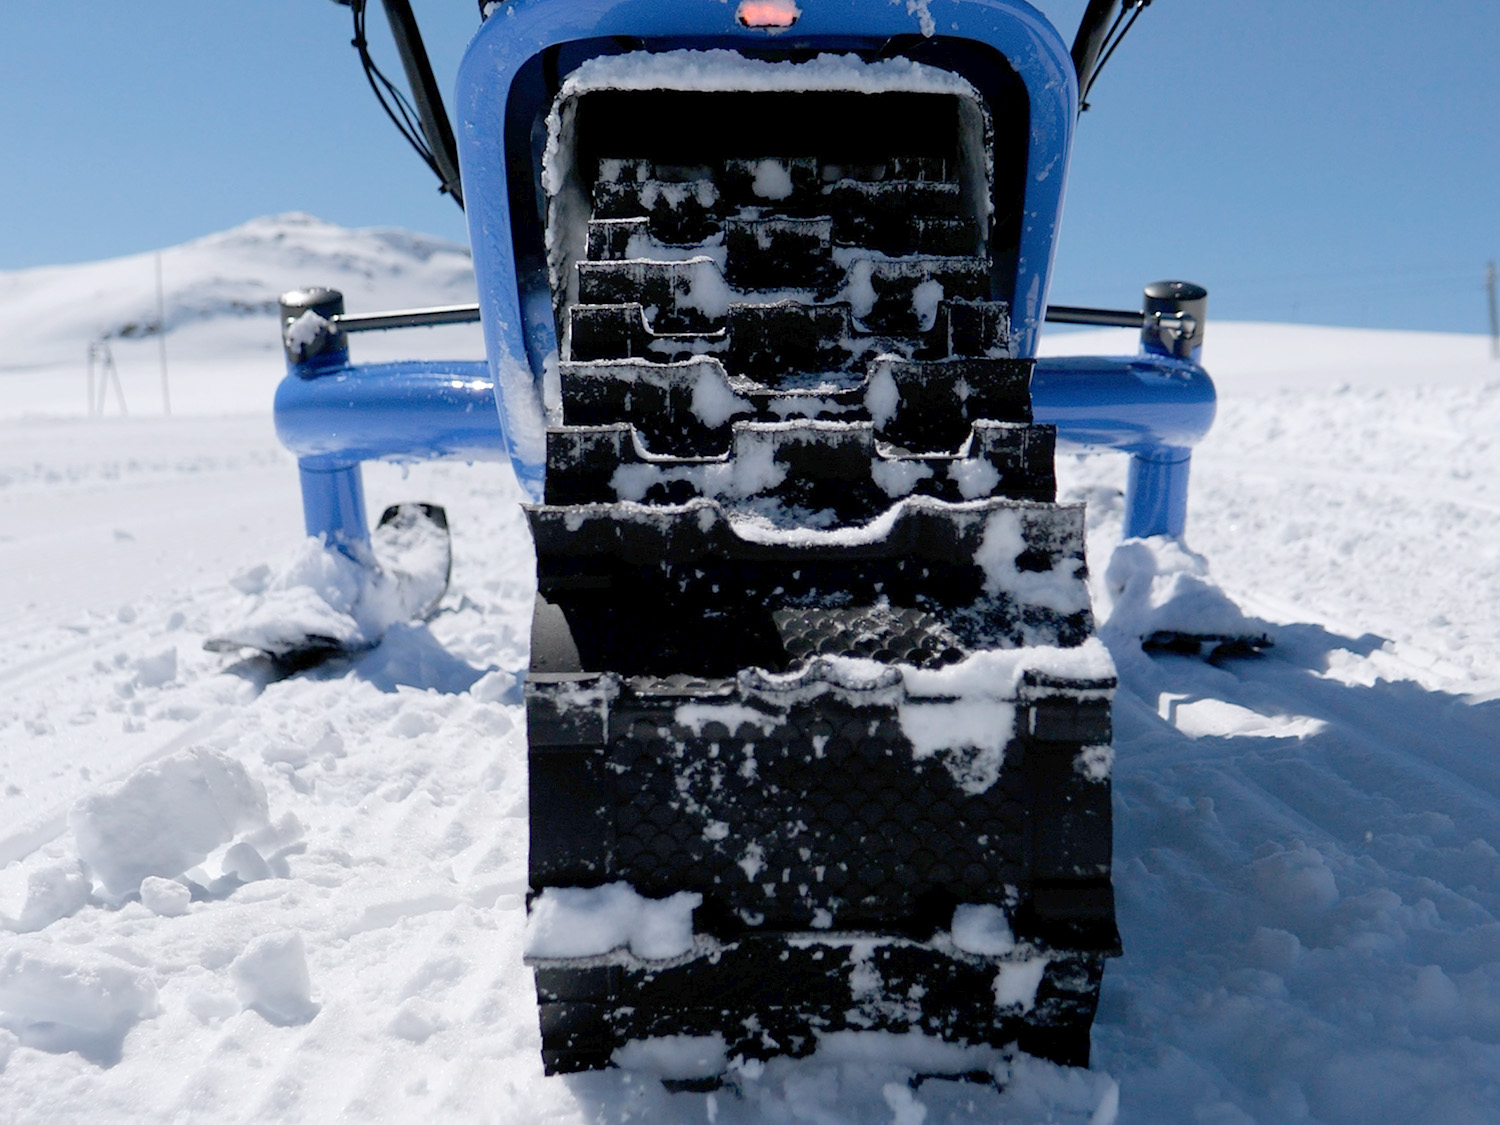 Arosno etrace the first electric snow bike in the world